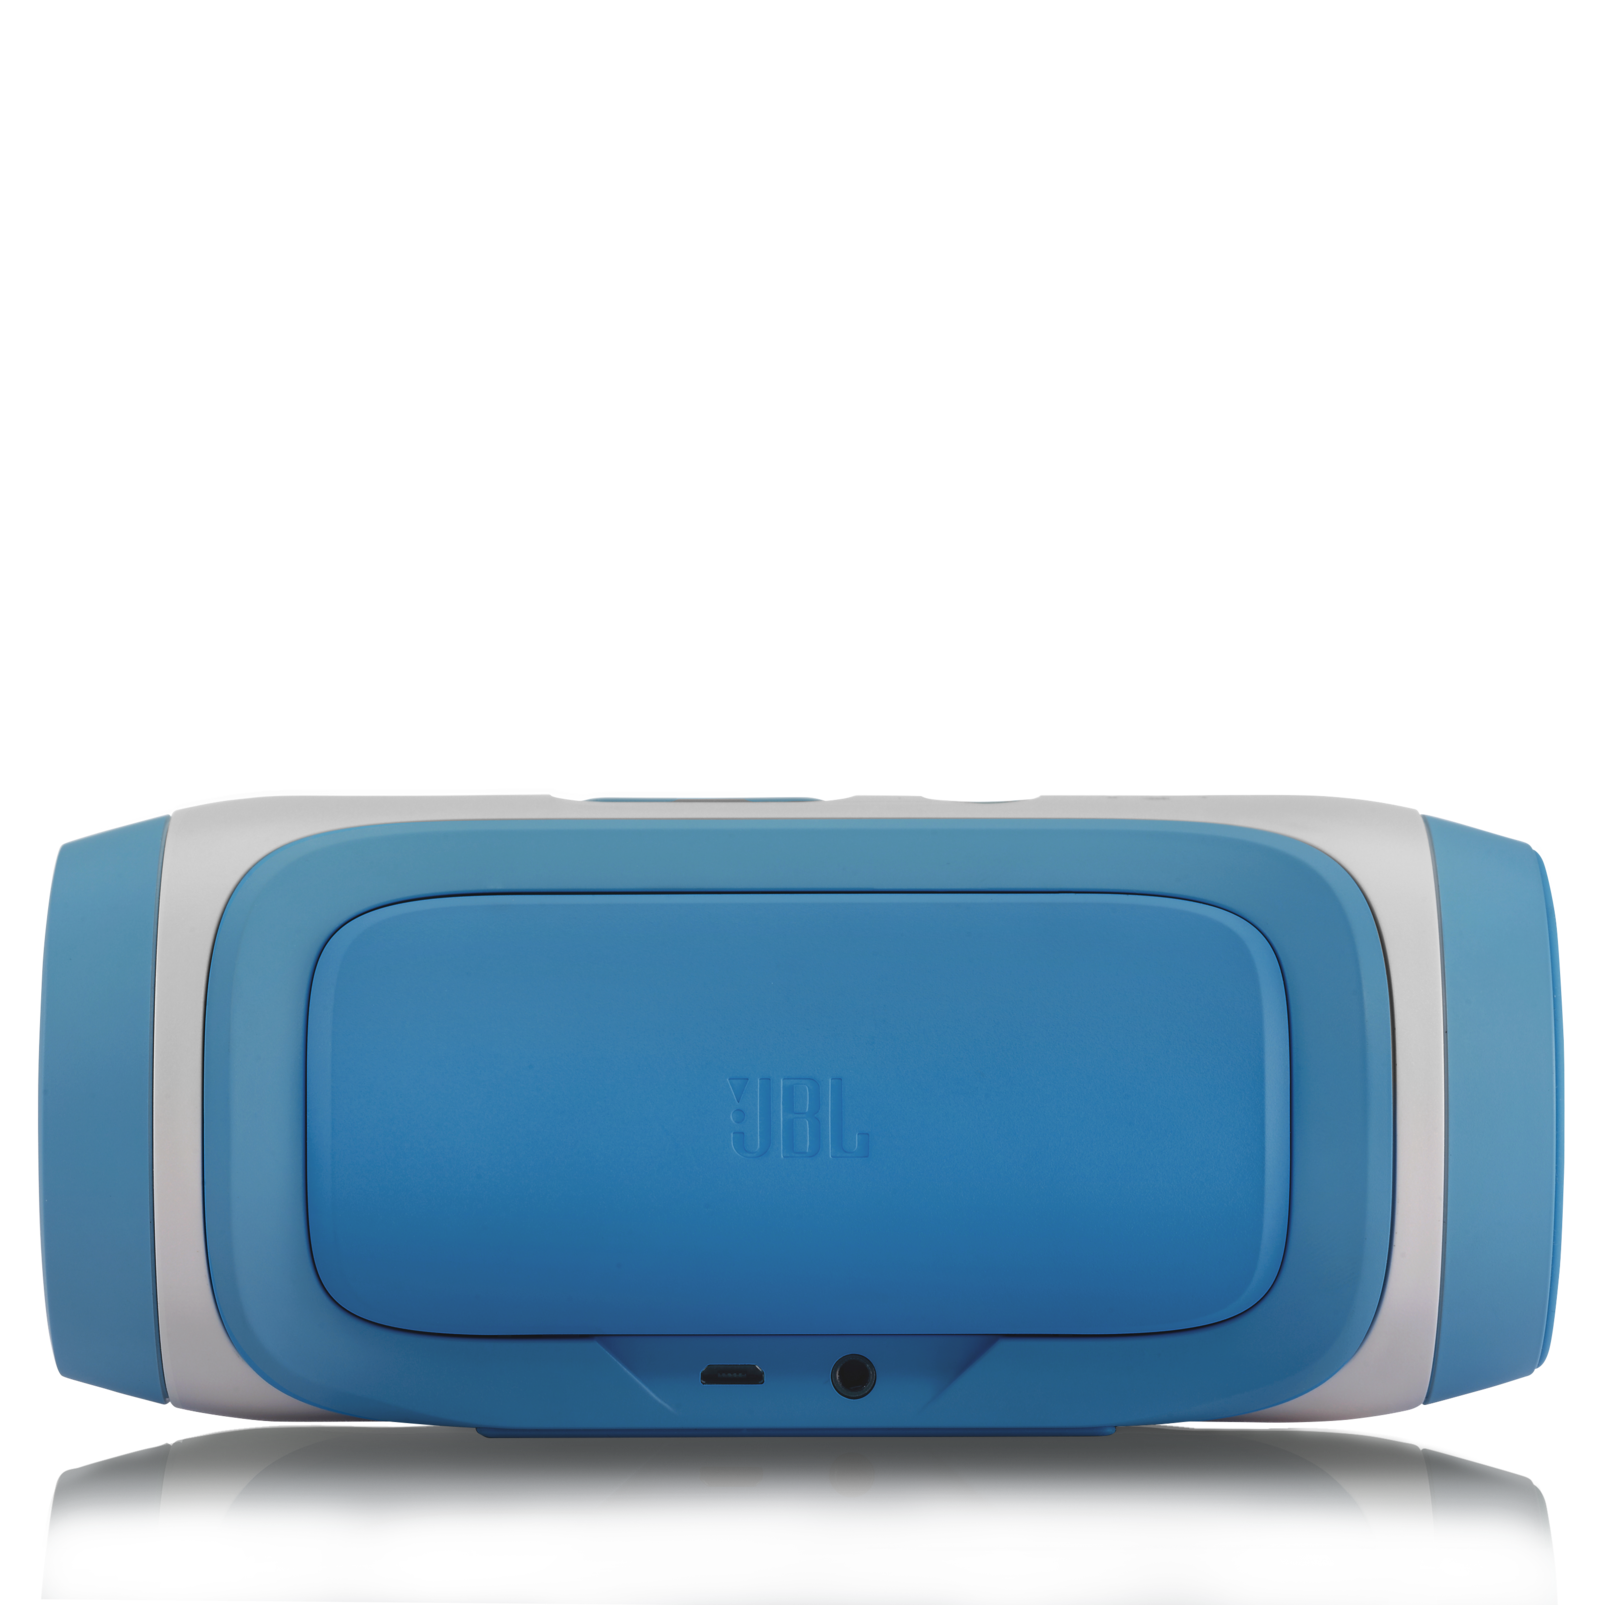 JBL Charge - Blue-Z - Portable Wireless Bluetooth Speaker with USB Charger - Back